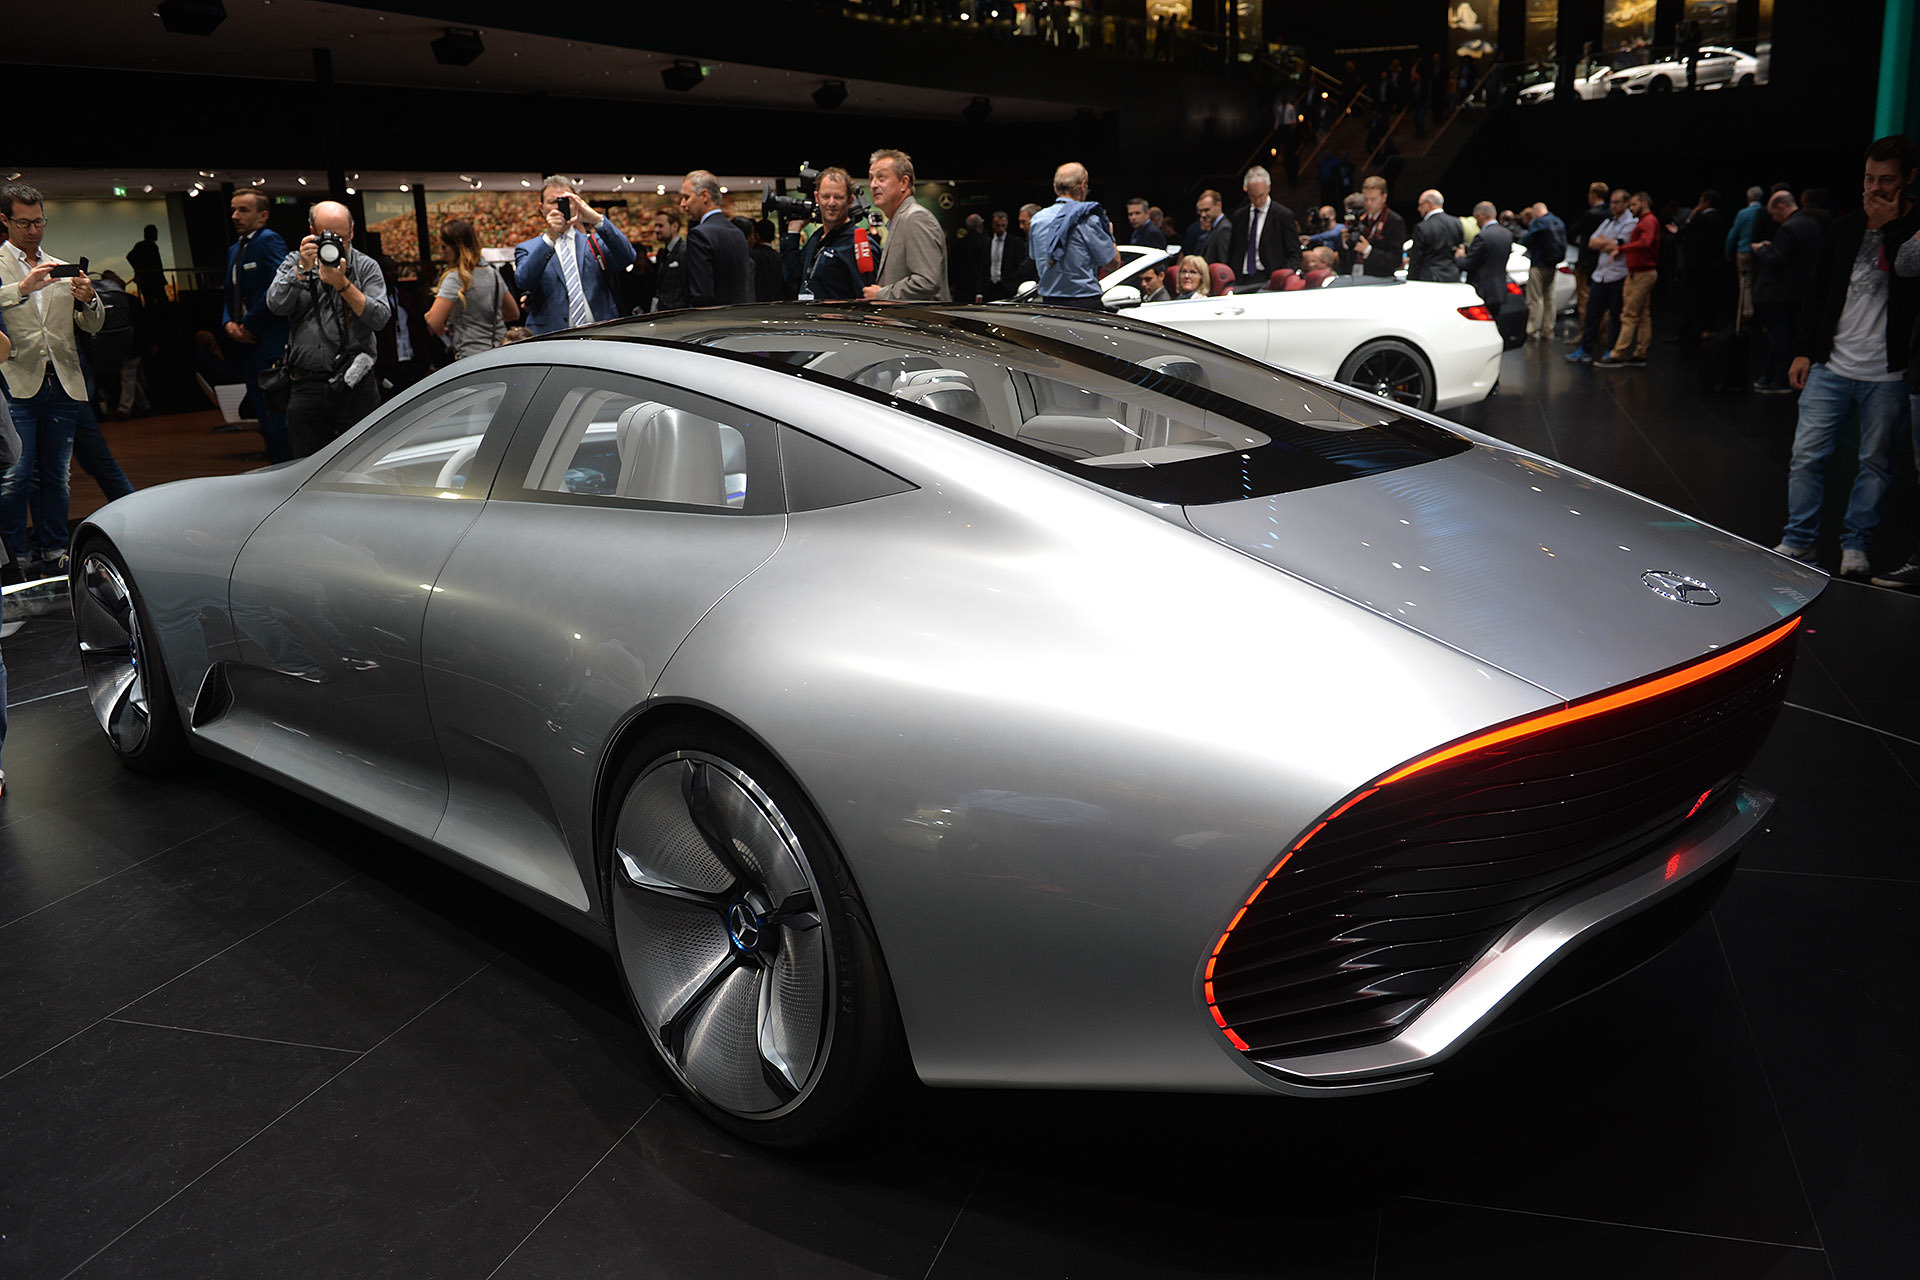 Mercedes benz concept iaa frankfurt 2015 0 for Mercedes benz frankfurt